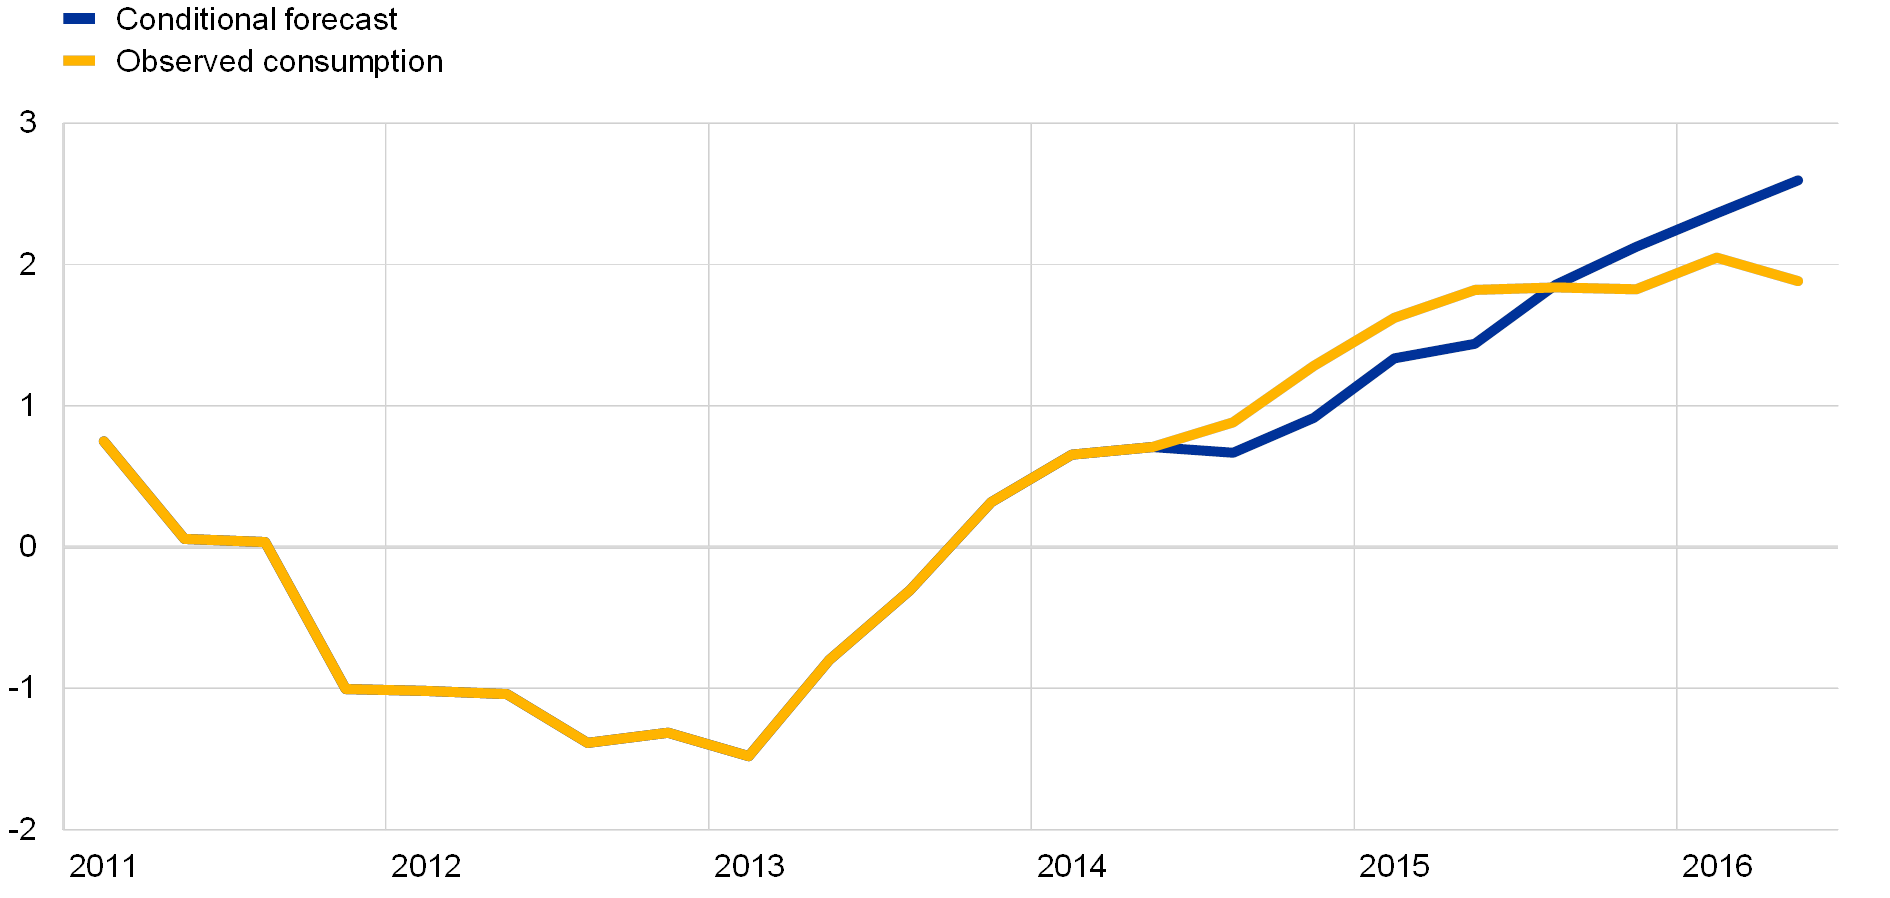 Private consumption and its drivers in the current economic expansion